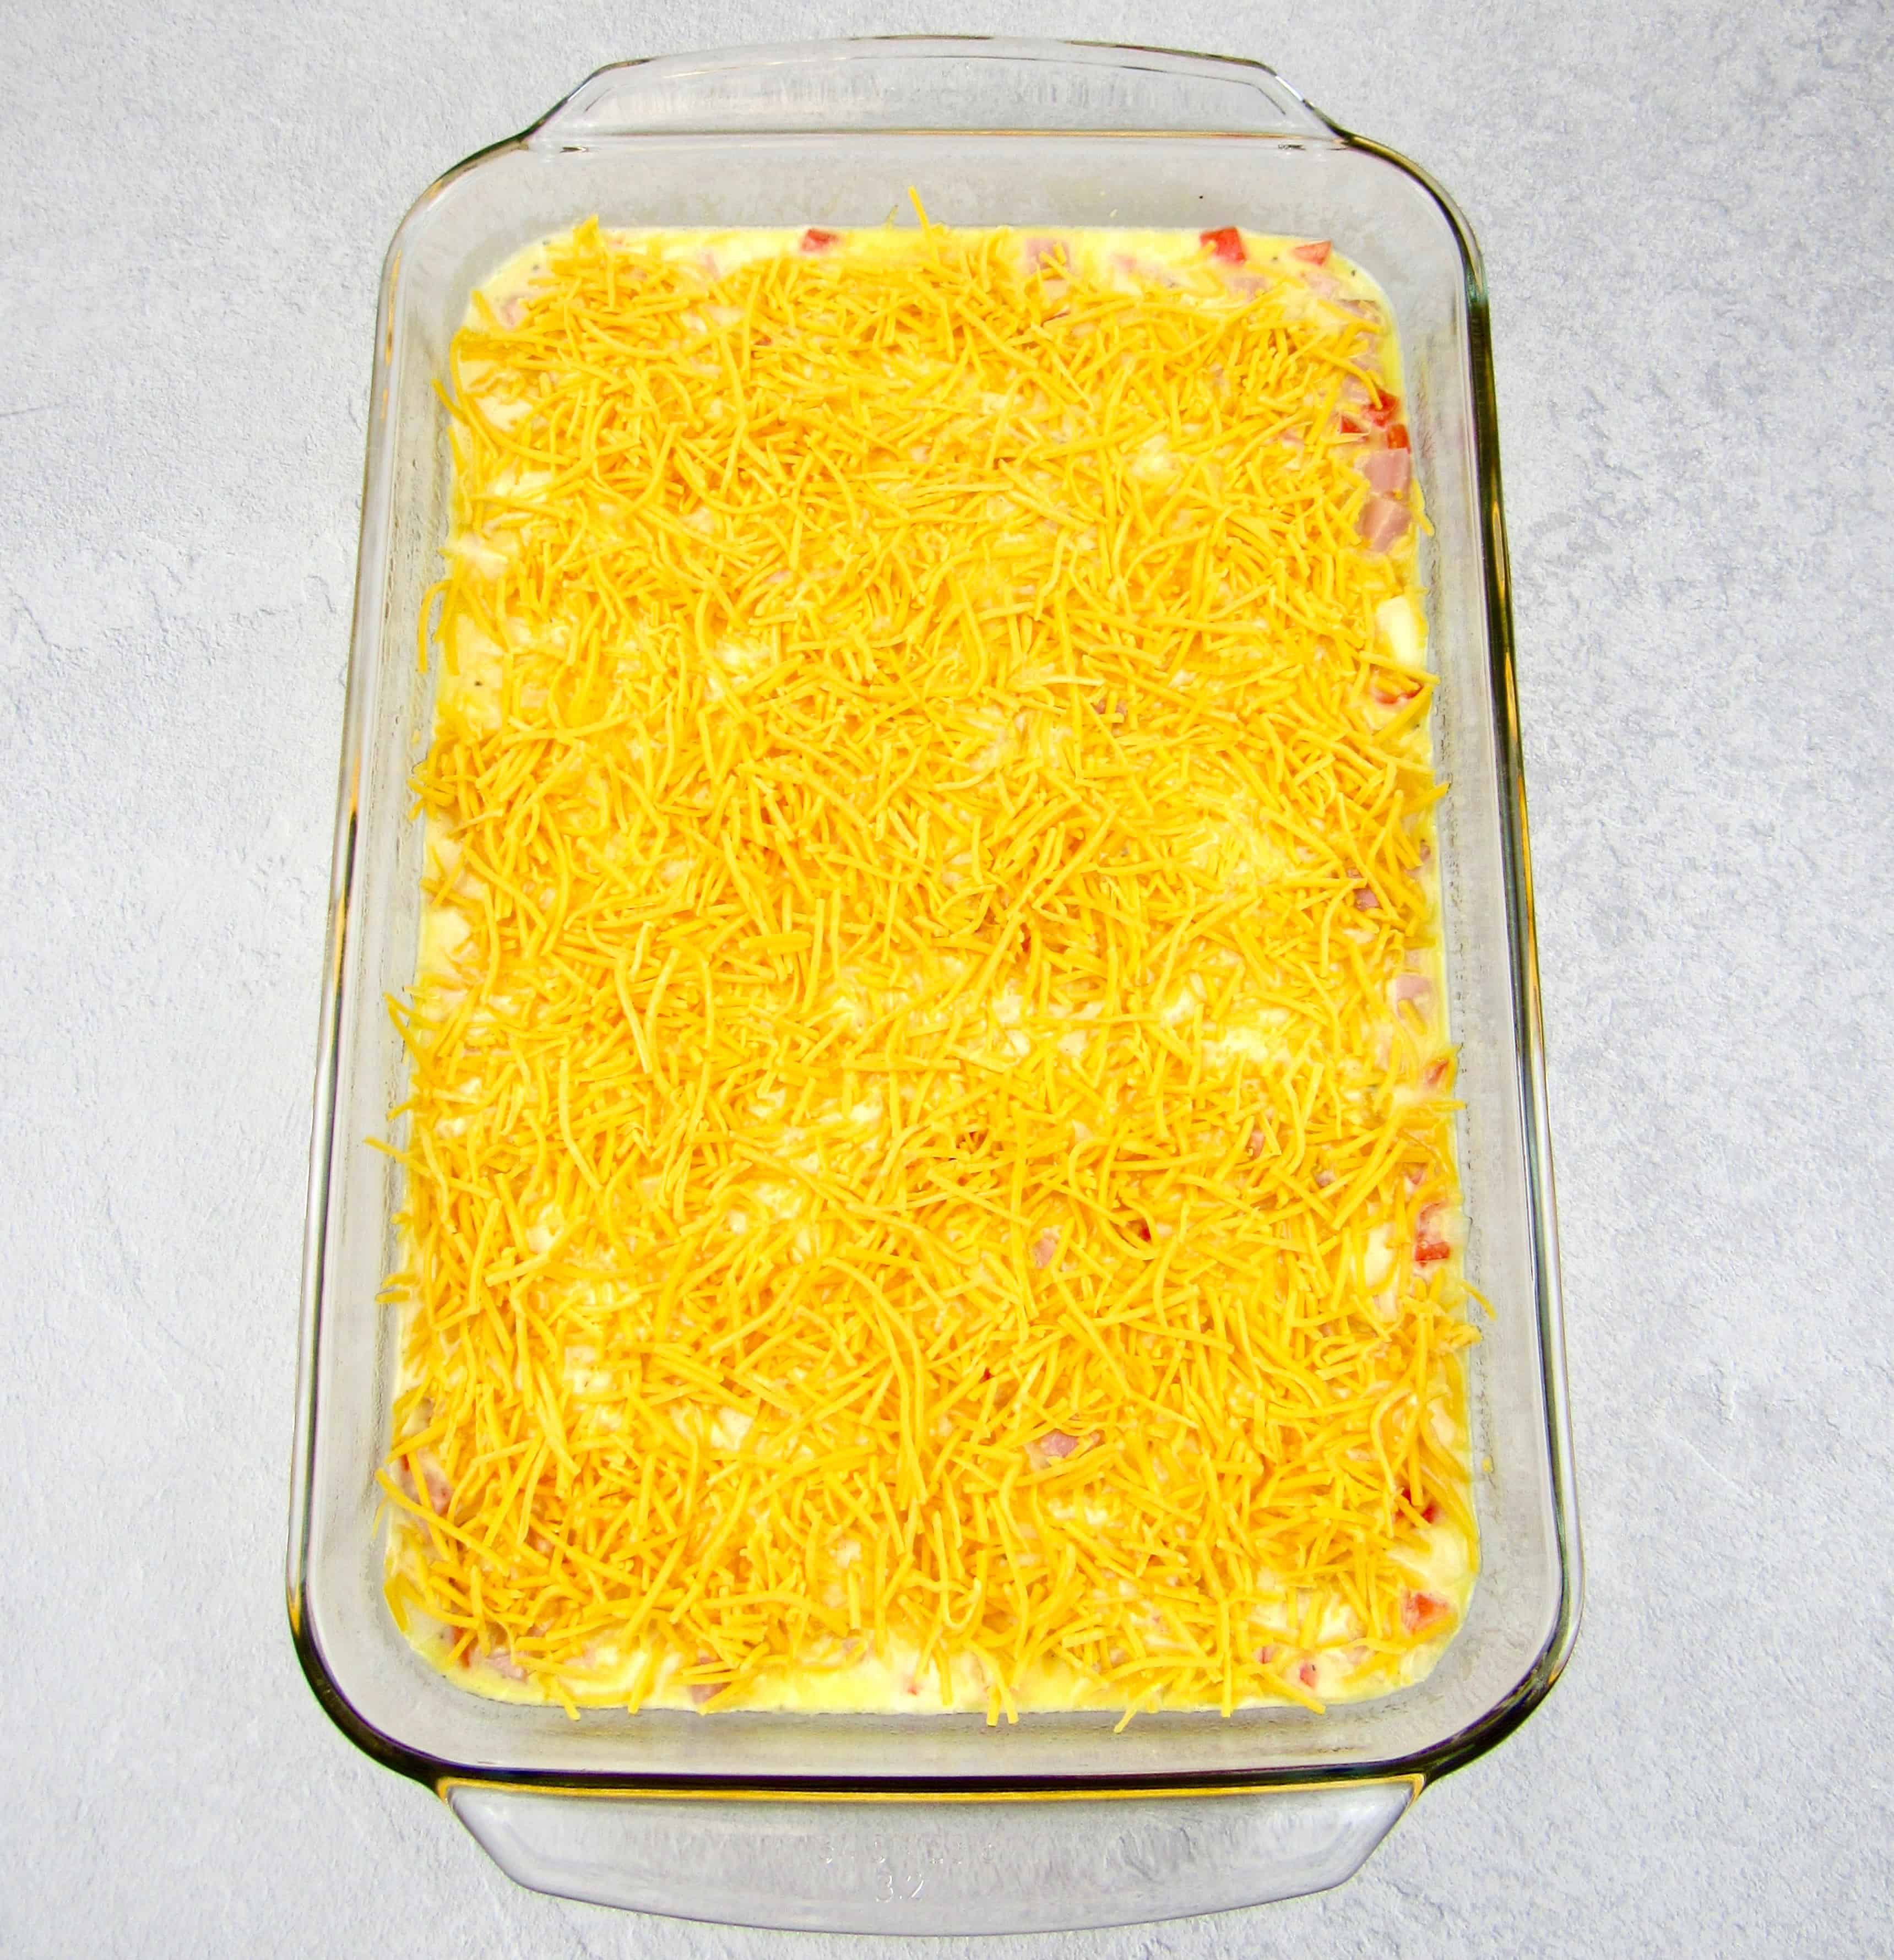 breakfast casserole with cheese on top unbaked